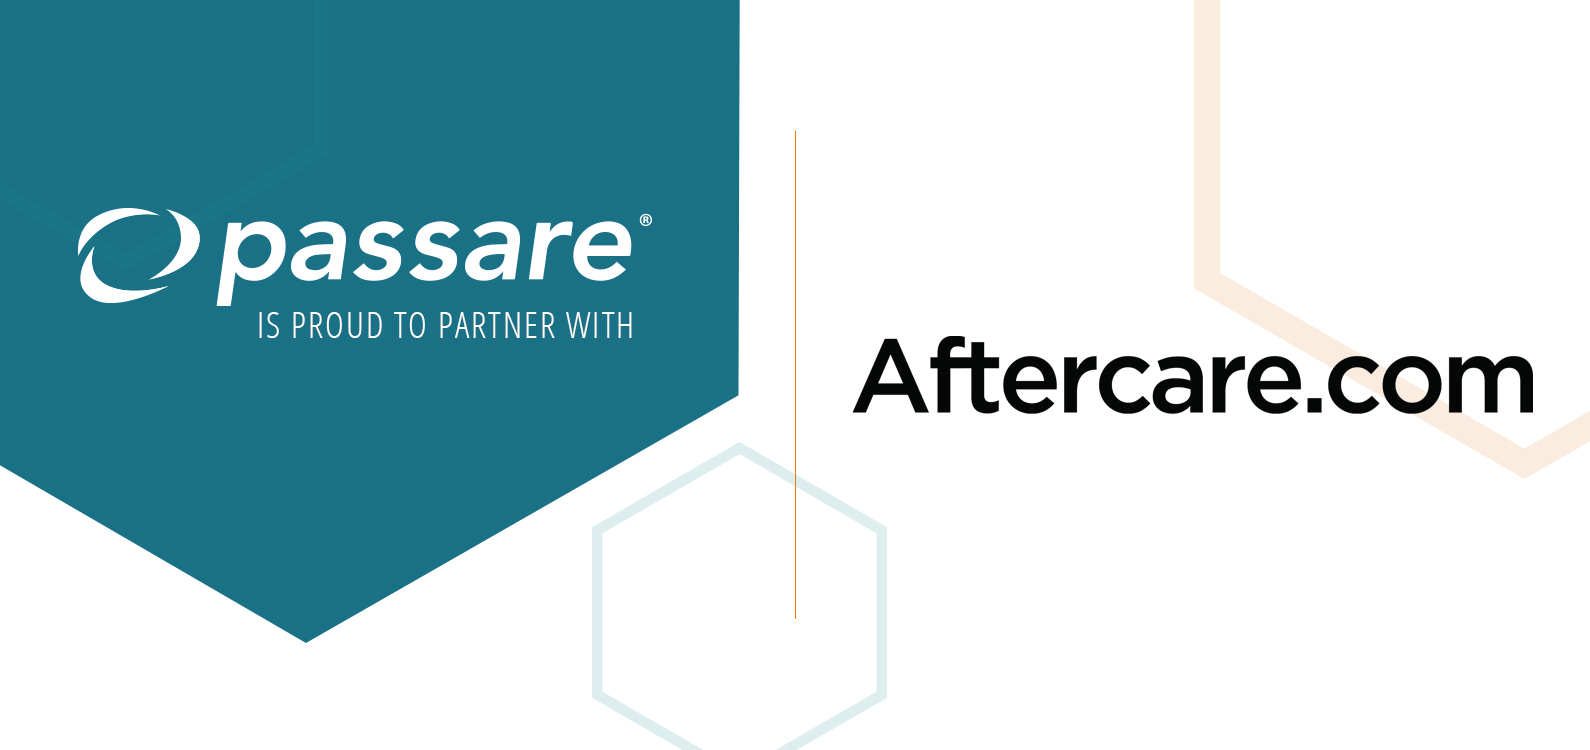 Passare to Partner with Aftercare.com